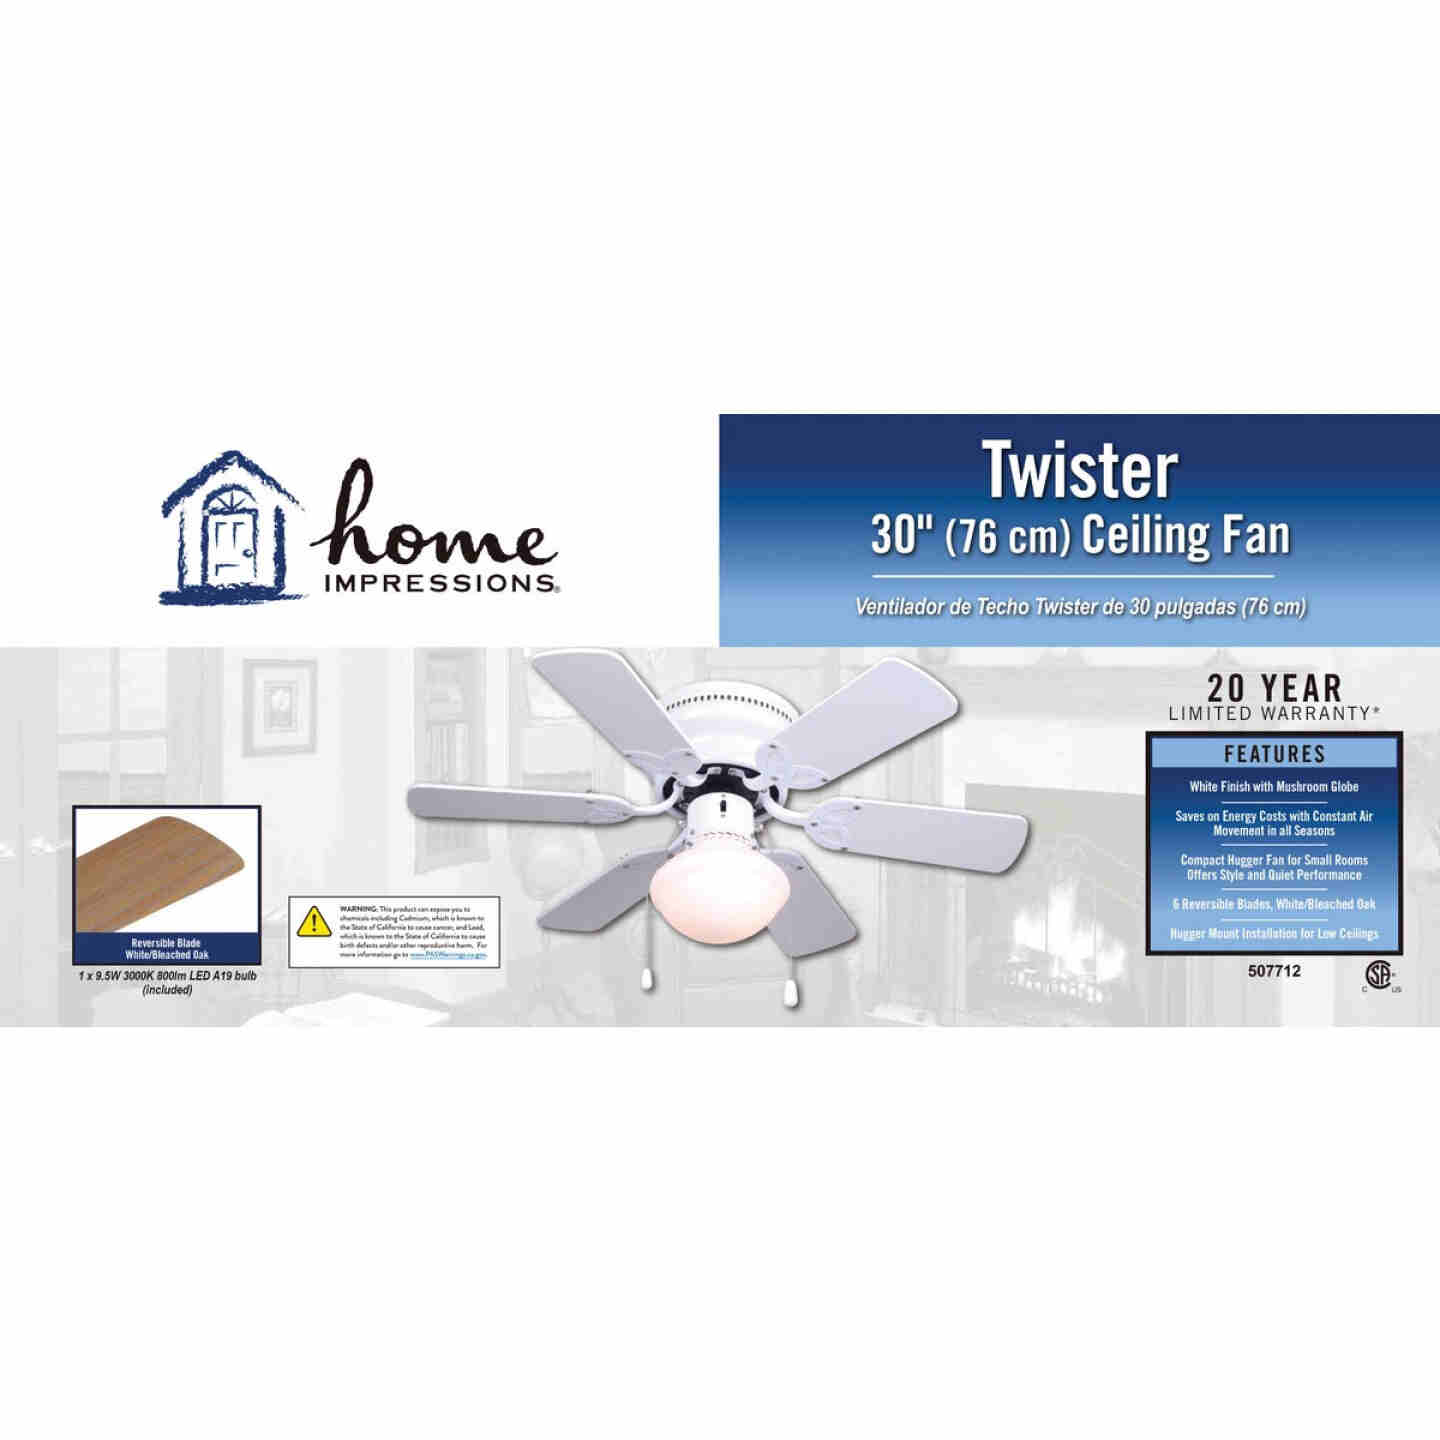 Home Impressions Twister 30 In. White Ceiling Fan with Light Kit Image 2